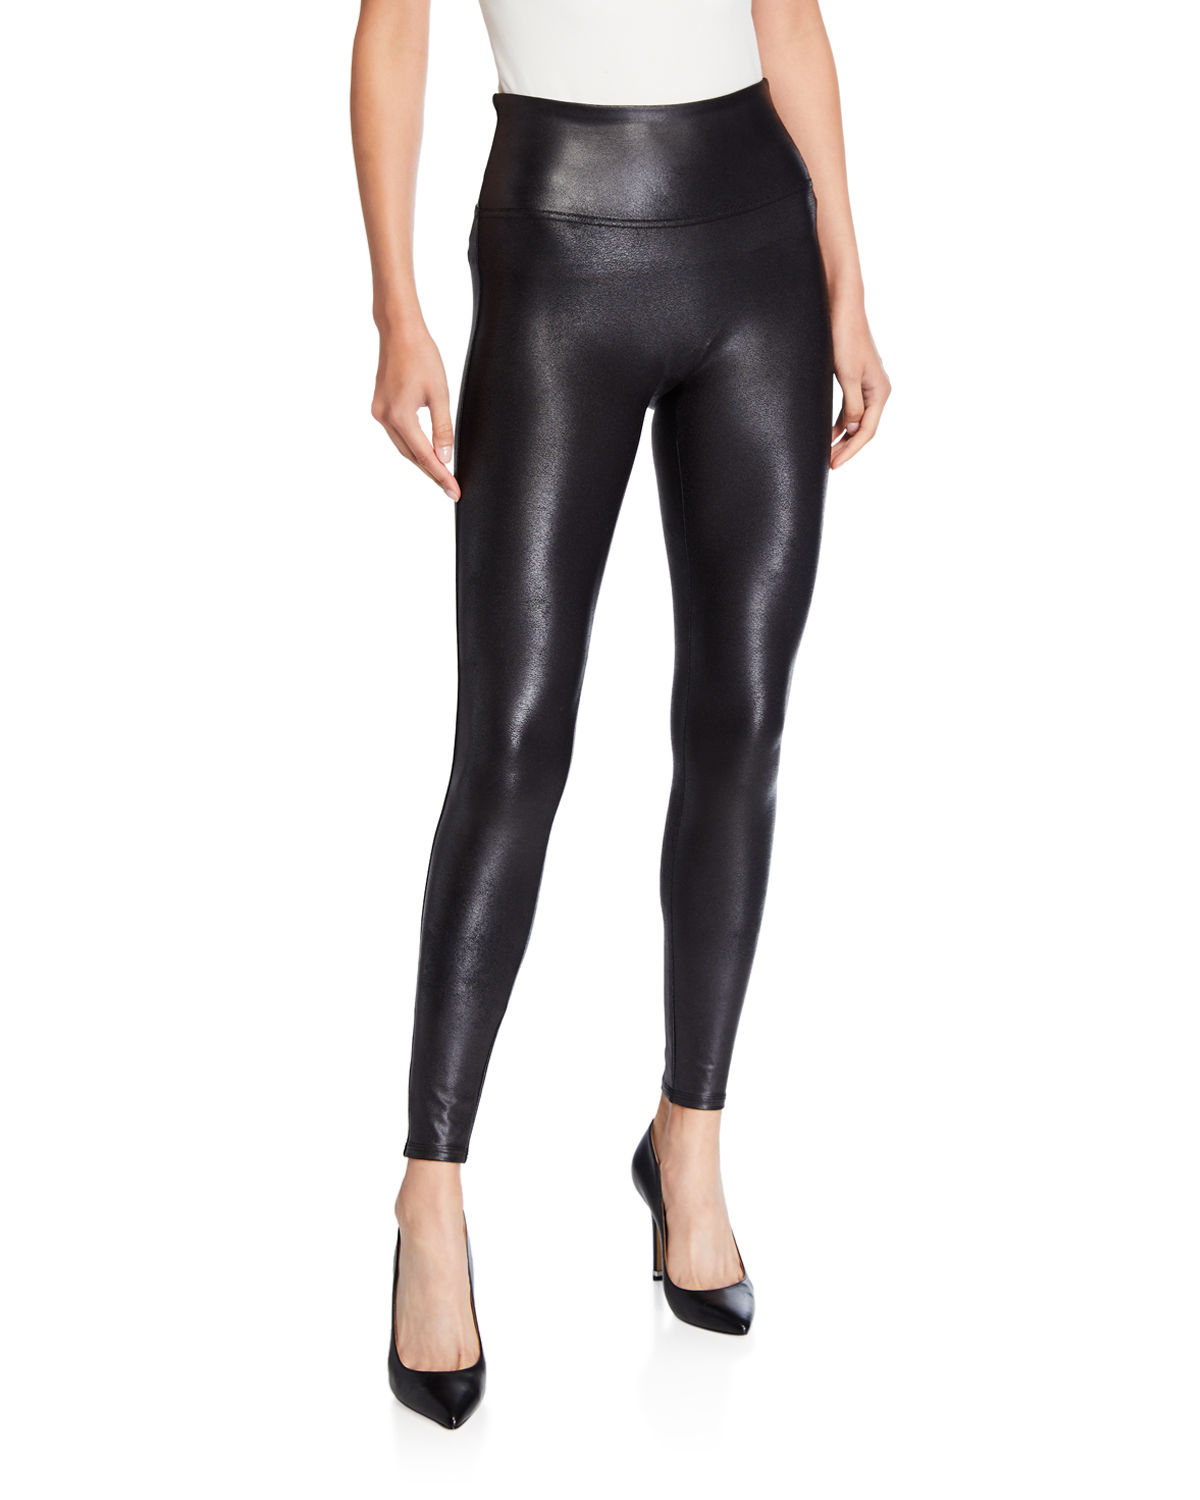 ea6c76eb74d Spanx Ready-to-Wow™ Faux-Leather Leggings